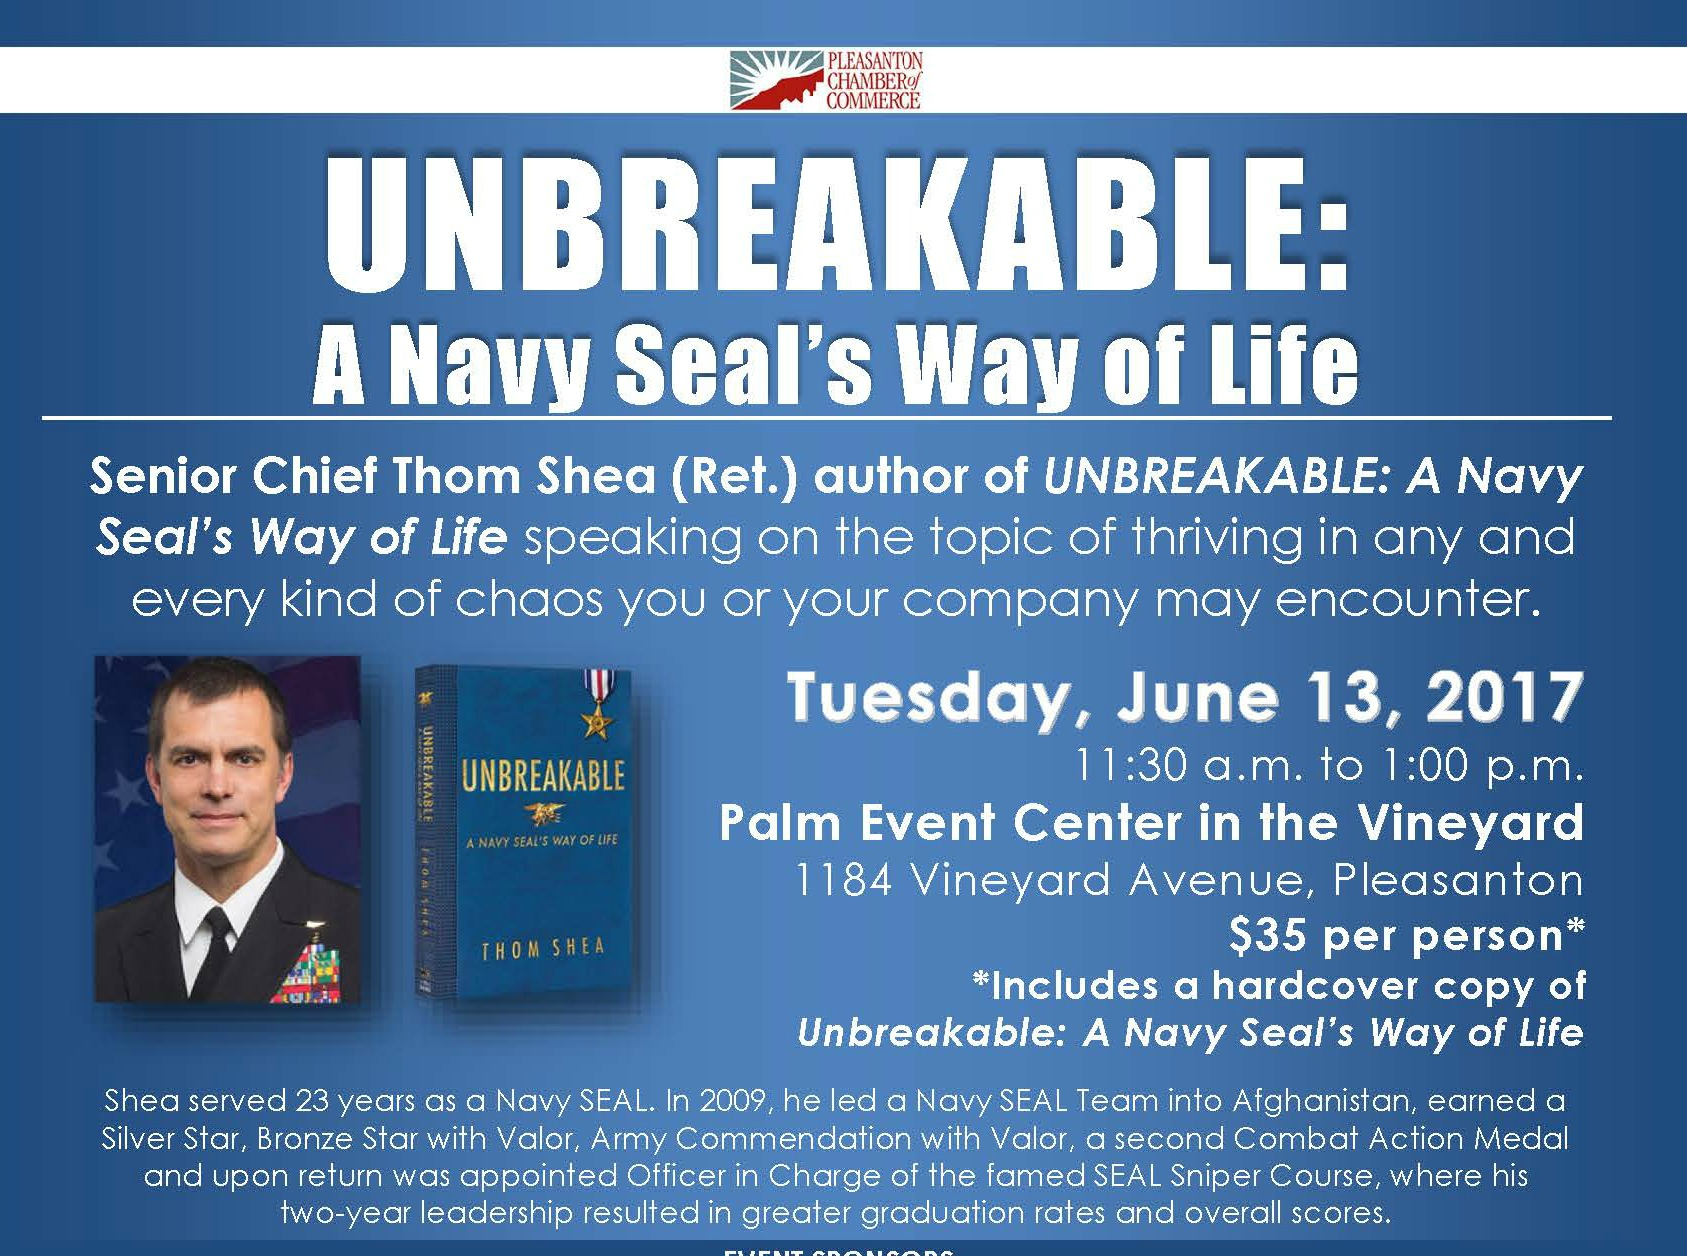 Unbreakable: A Navy Seal's Way of Life